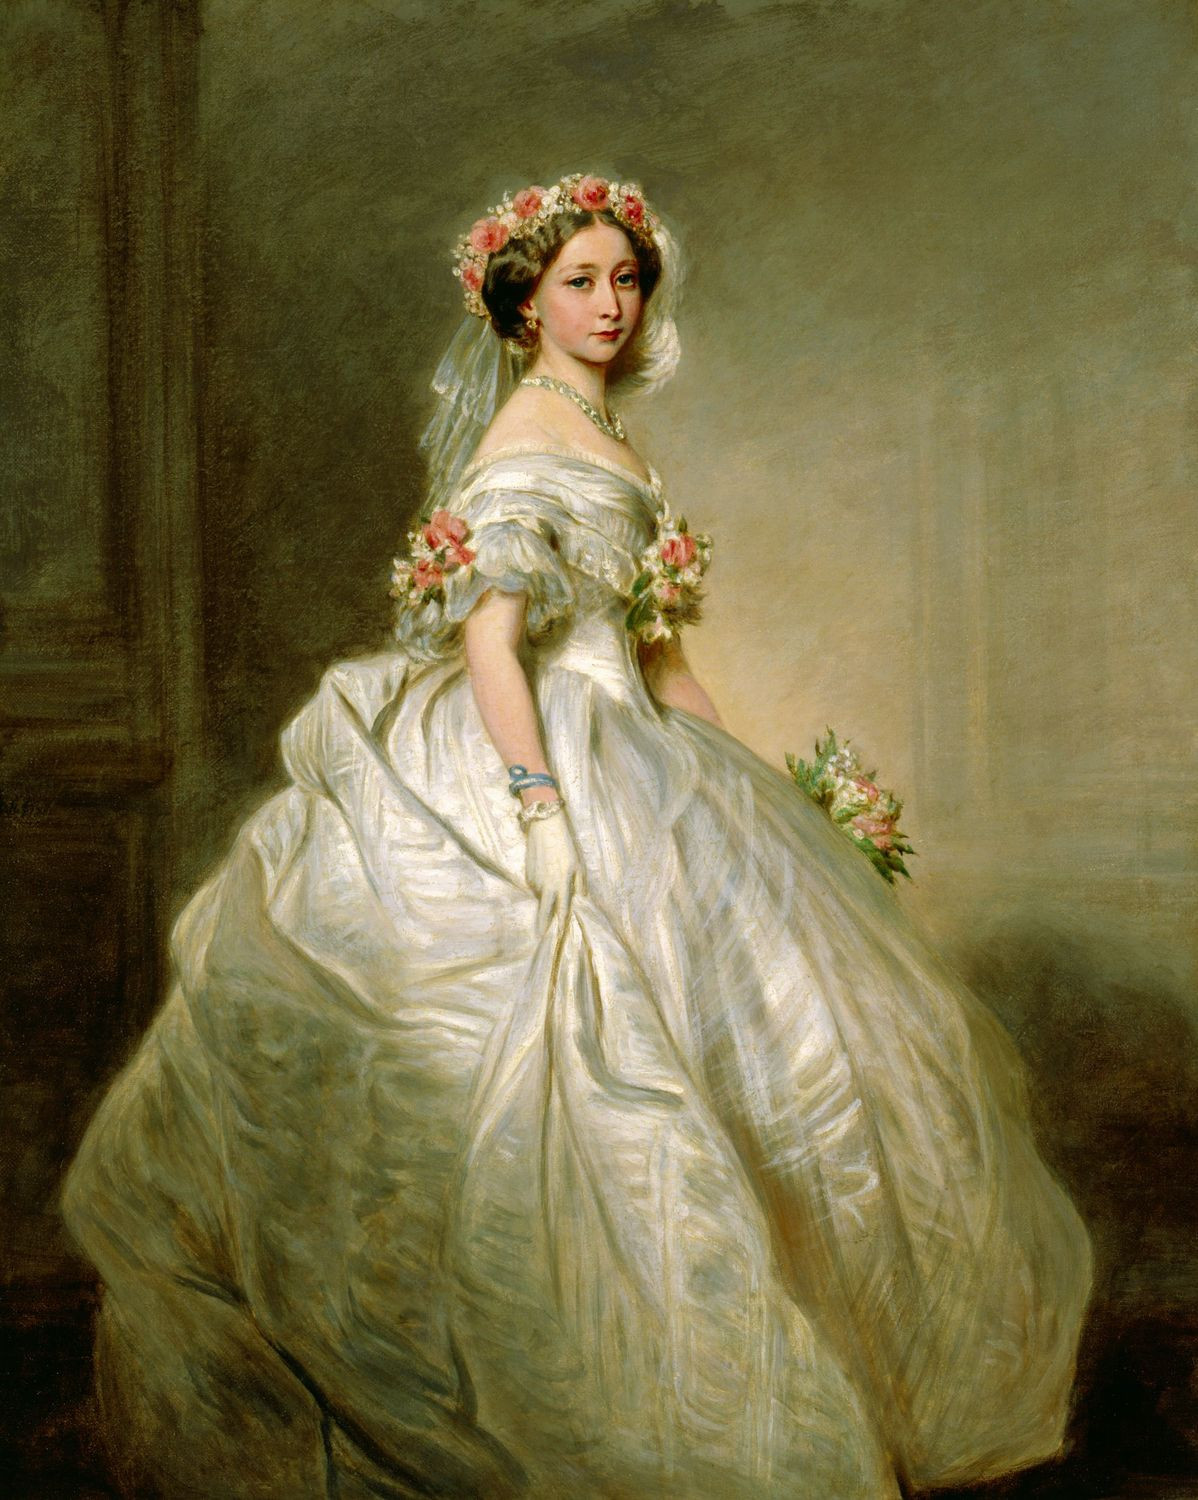 Princess Alice by Franz Xaver Winterhalter